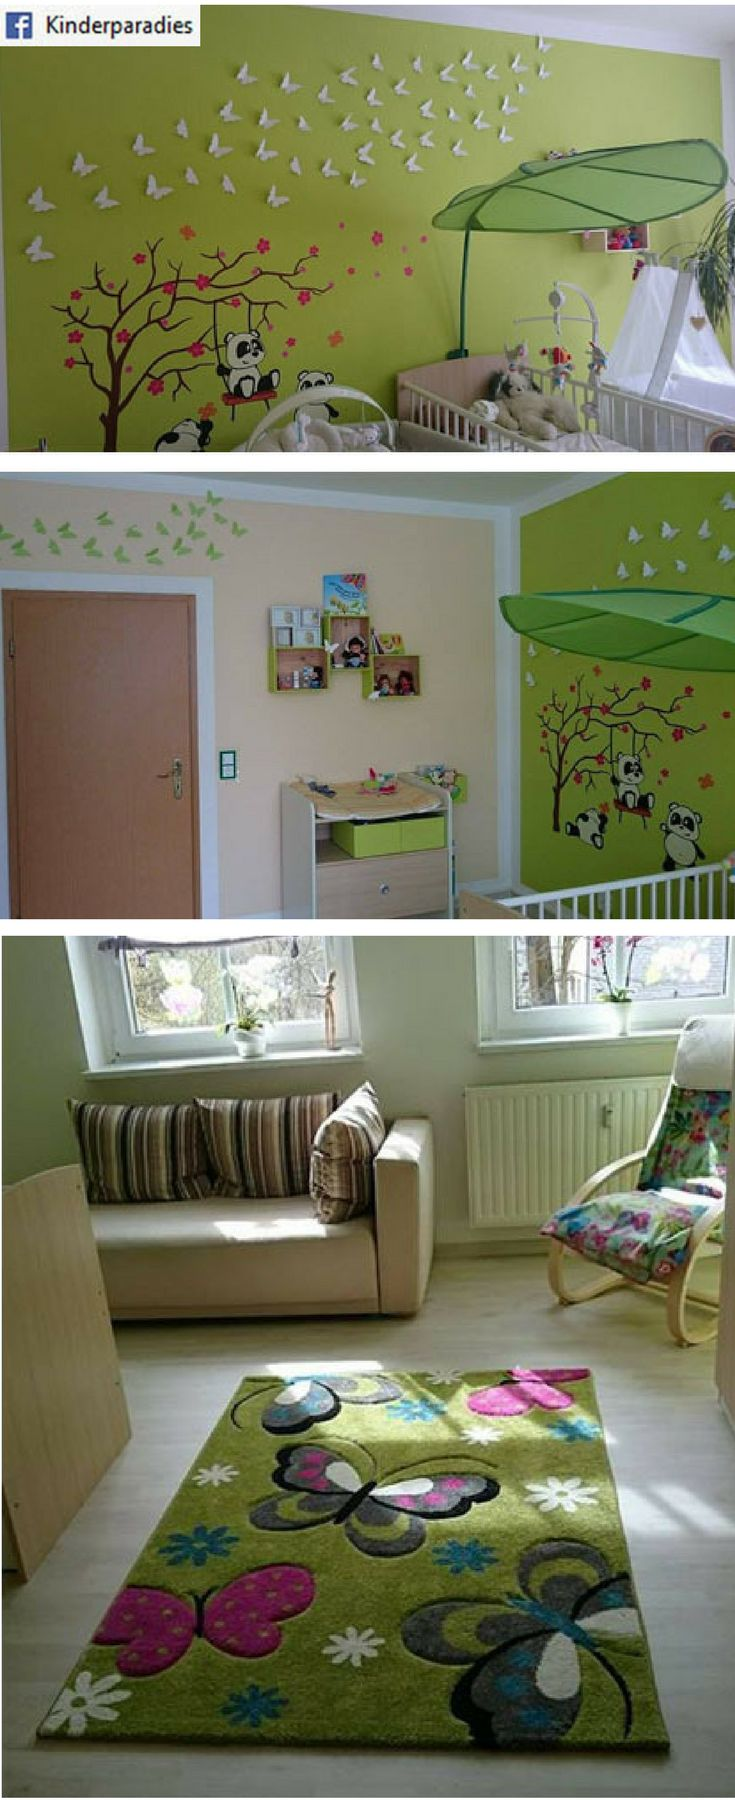 Toll Kinderzimmer Von Nancy Regner ▻ Wandtattoo Panda: Http://amzn.to/